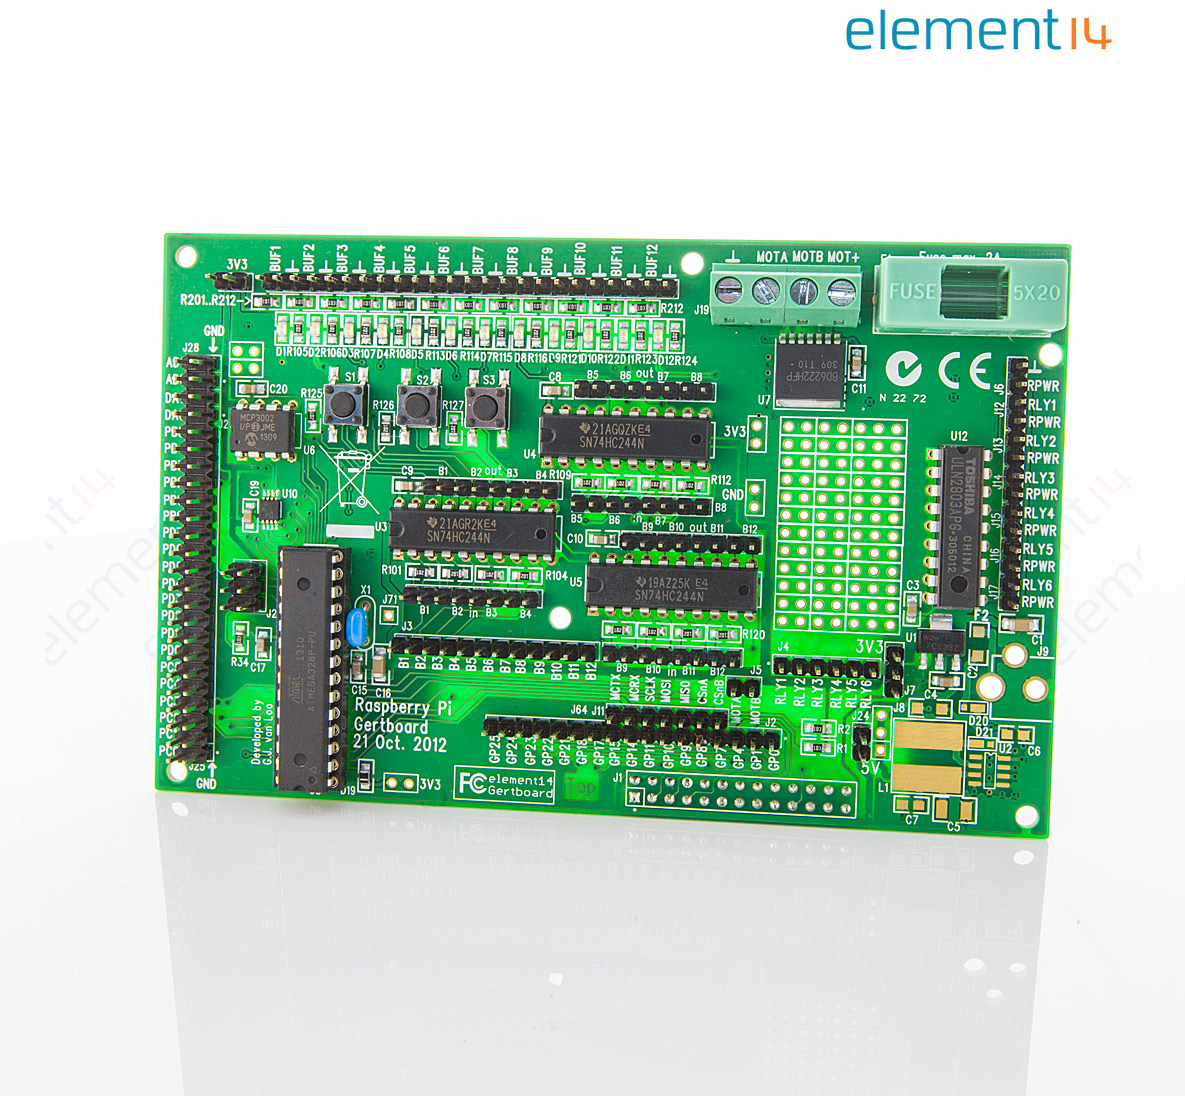 Gertboard Daughter Board Gpio Expansion For Circuit We Assemble With The Exception Of Rohscompliant Boards Raspberry Pi A D Converters Motor Controller